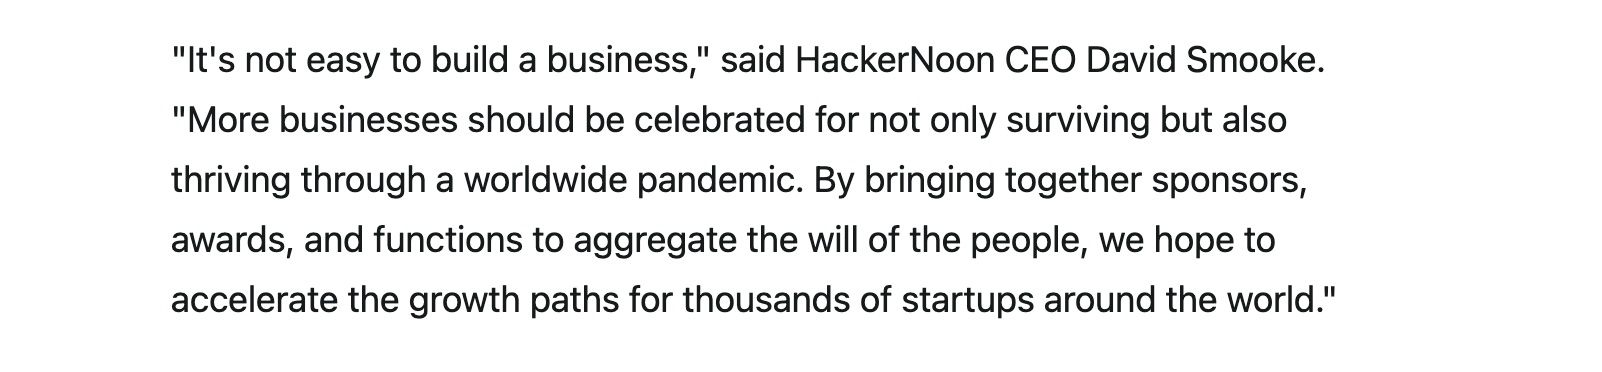 David Smooke on Startups of the Year